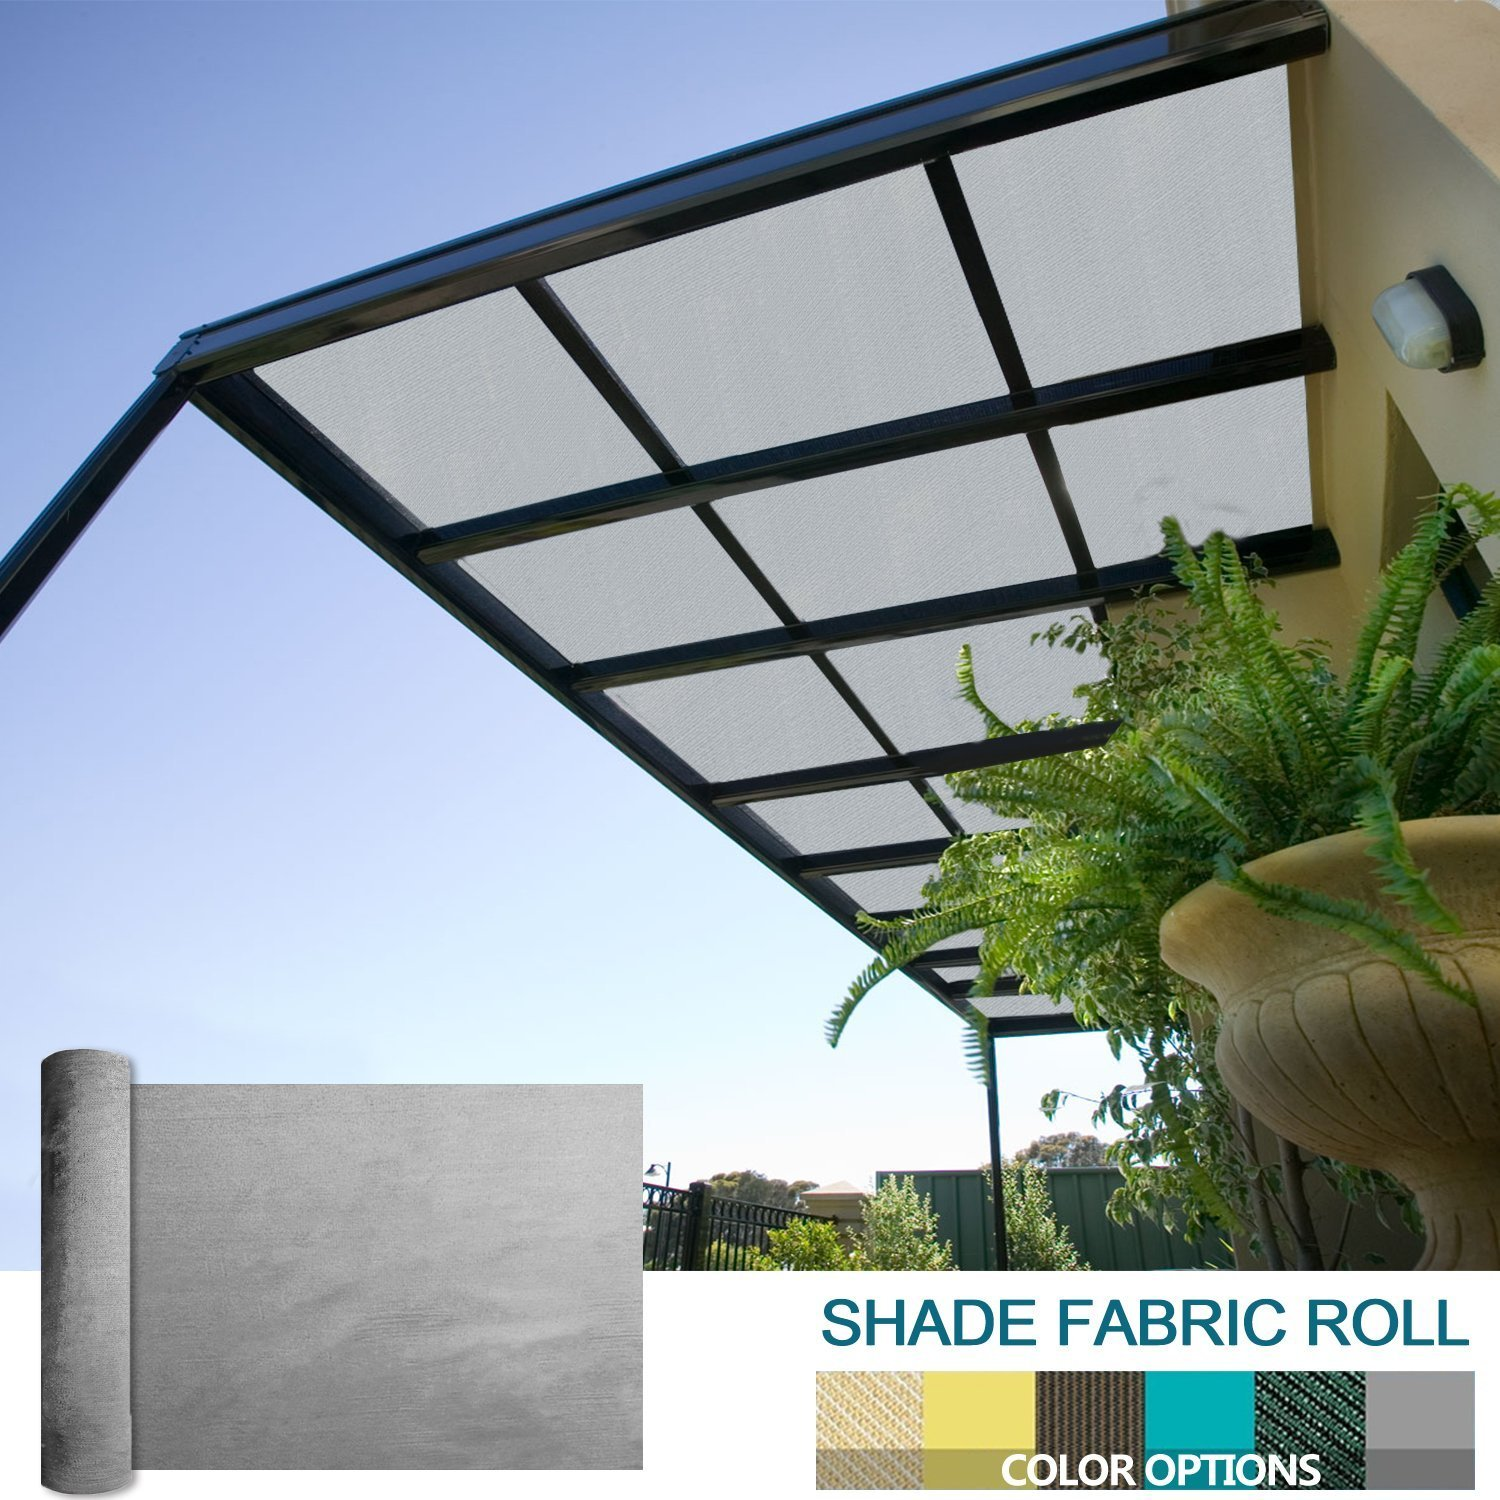 Coarbor 8Ft x 20Ft Shade Cloth Pergola Patio Cover Provide Shade Fabric Roll Mesh Screen Heavy Duty Provide Privacy Permeable UV Resistant Make to Order- Light Grey